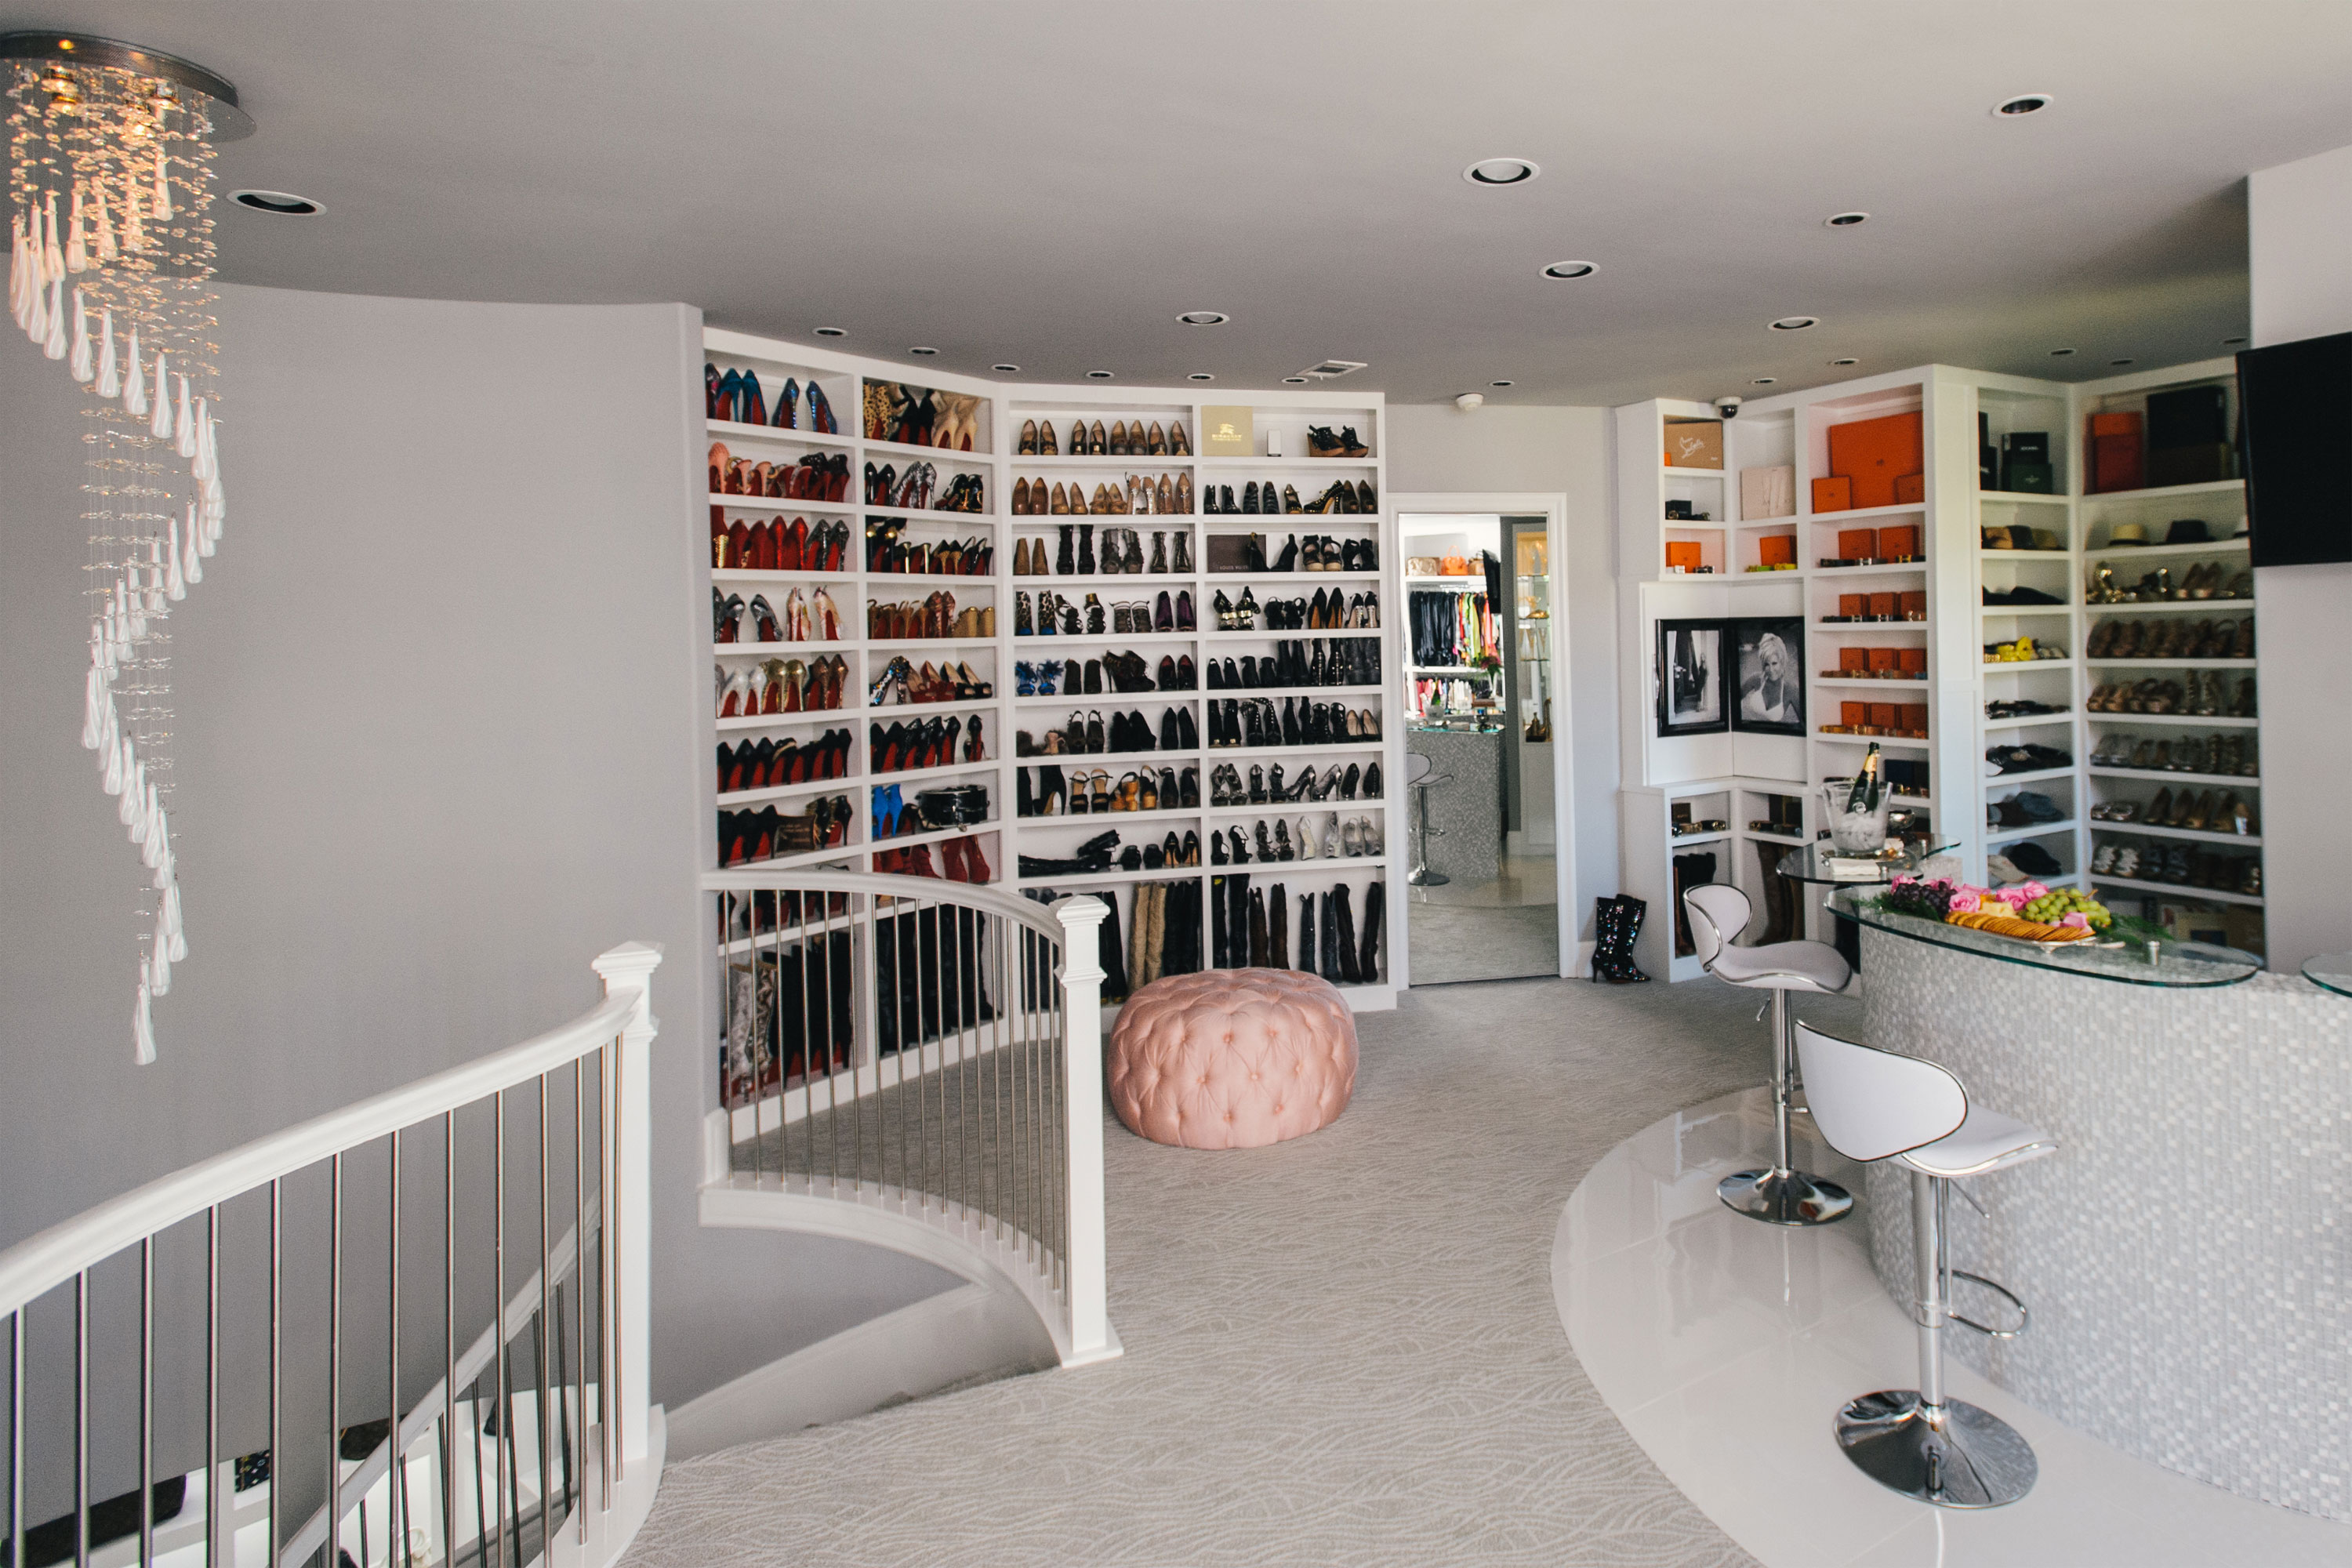 Les 10 plus beaux dressings kissmyshoe for Best walk in closets in the world